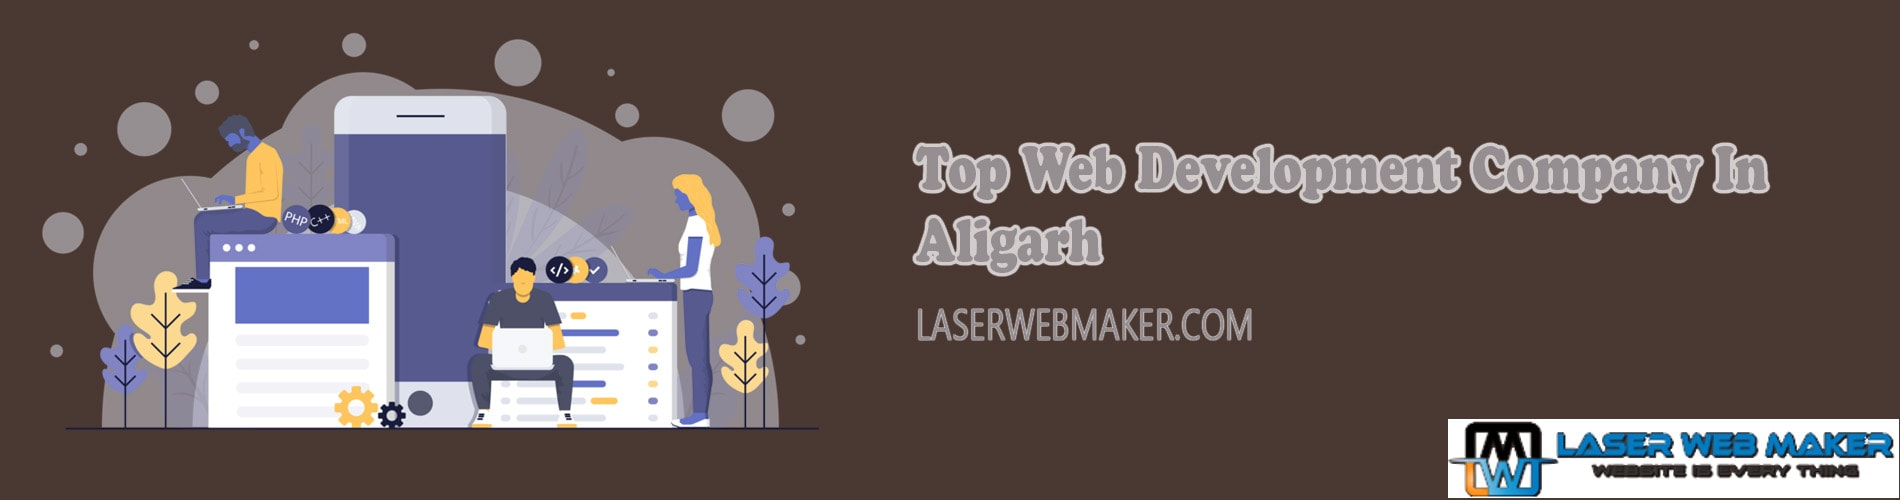 Top Web Development Company In Aligarh